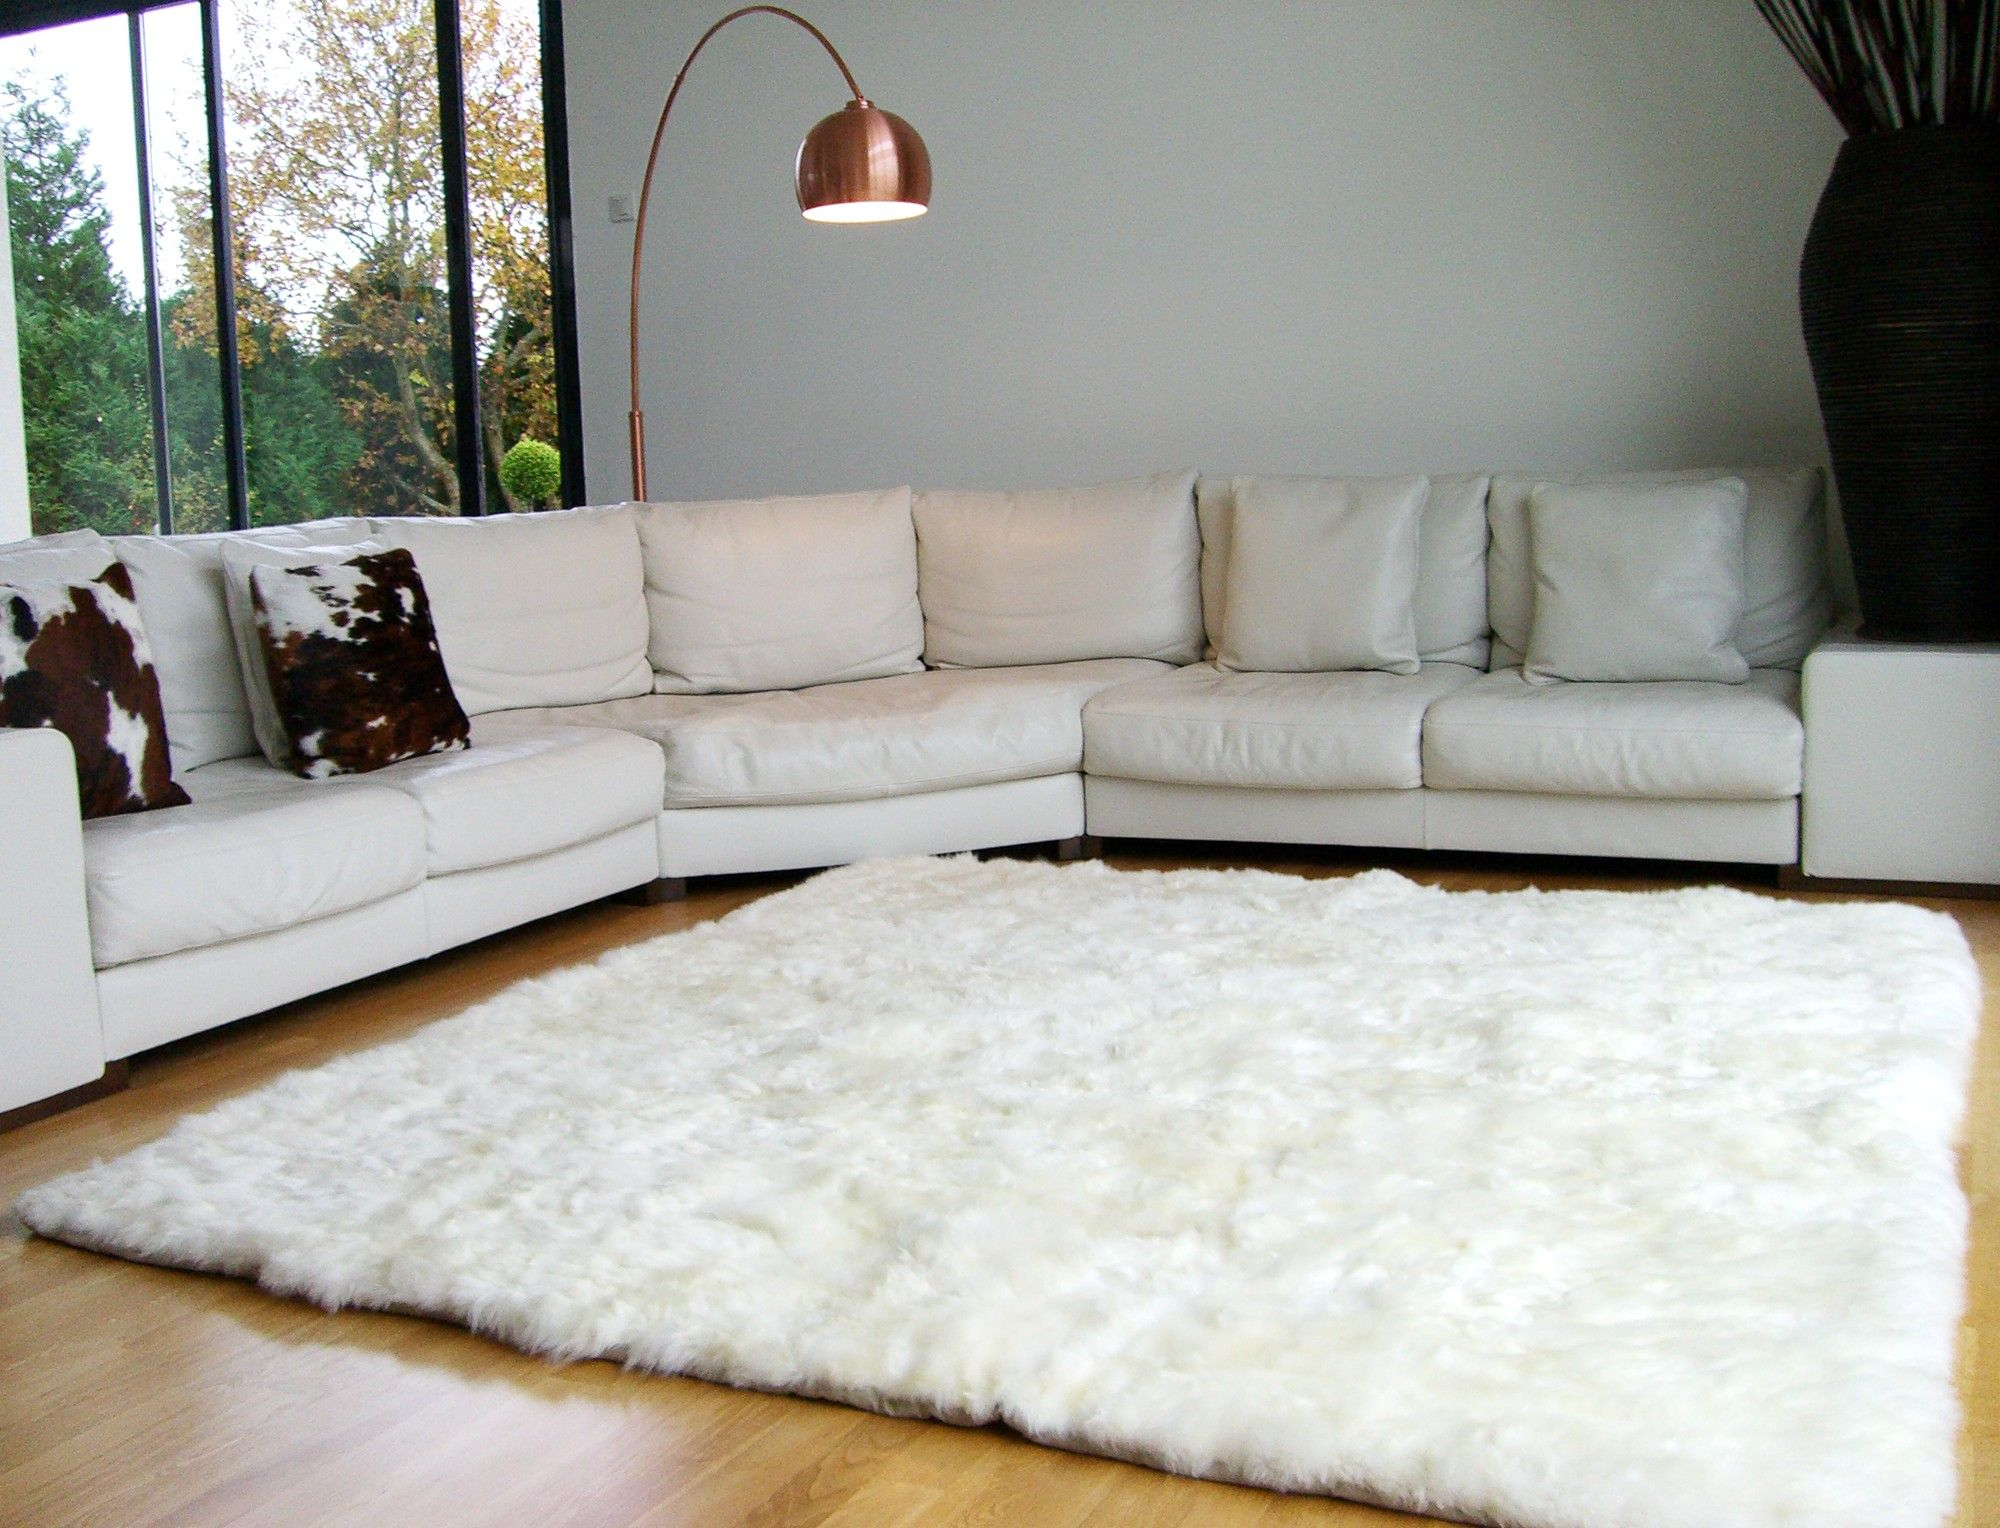 tapis en peau de mouton blanc 806 65 220 x 240 cm my home wishlist deco furnitures. Black Bedroom Furniture Sets. Home Design Ideas